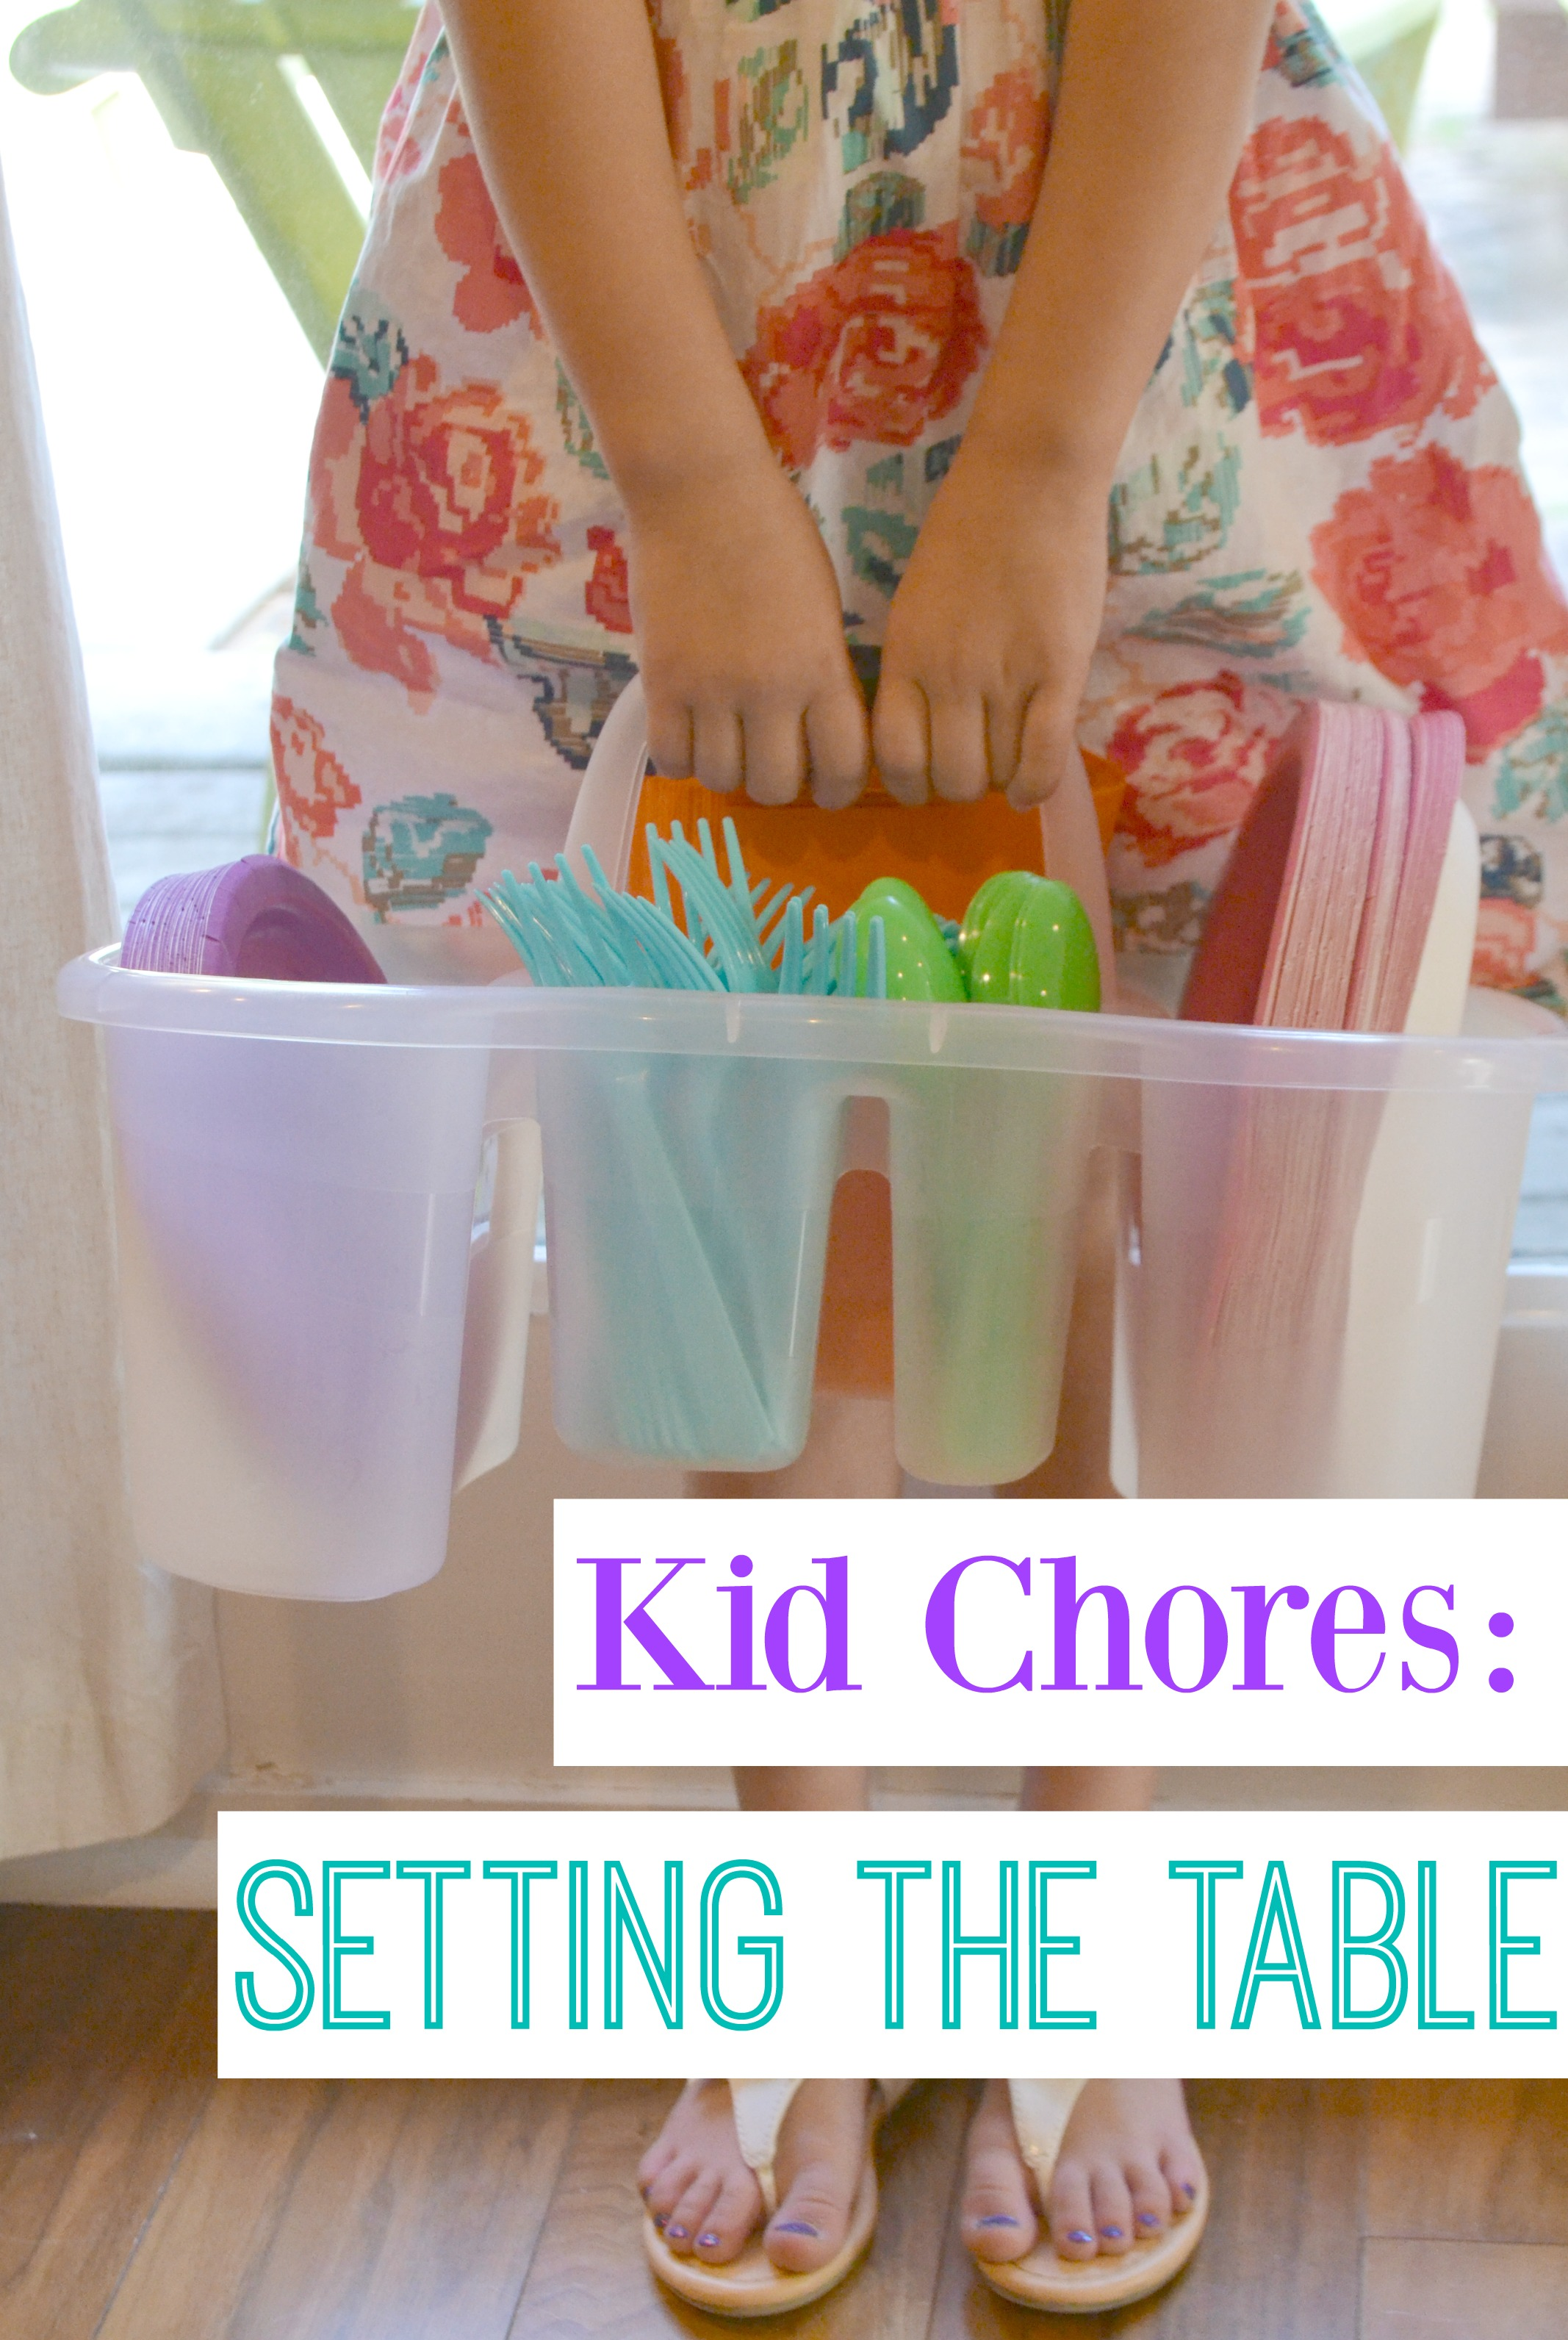 Kid Chores: Setting the Table. This caddy is perfect for toddlers learning chores. It has everything they need in all one space.